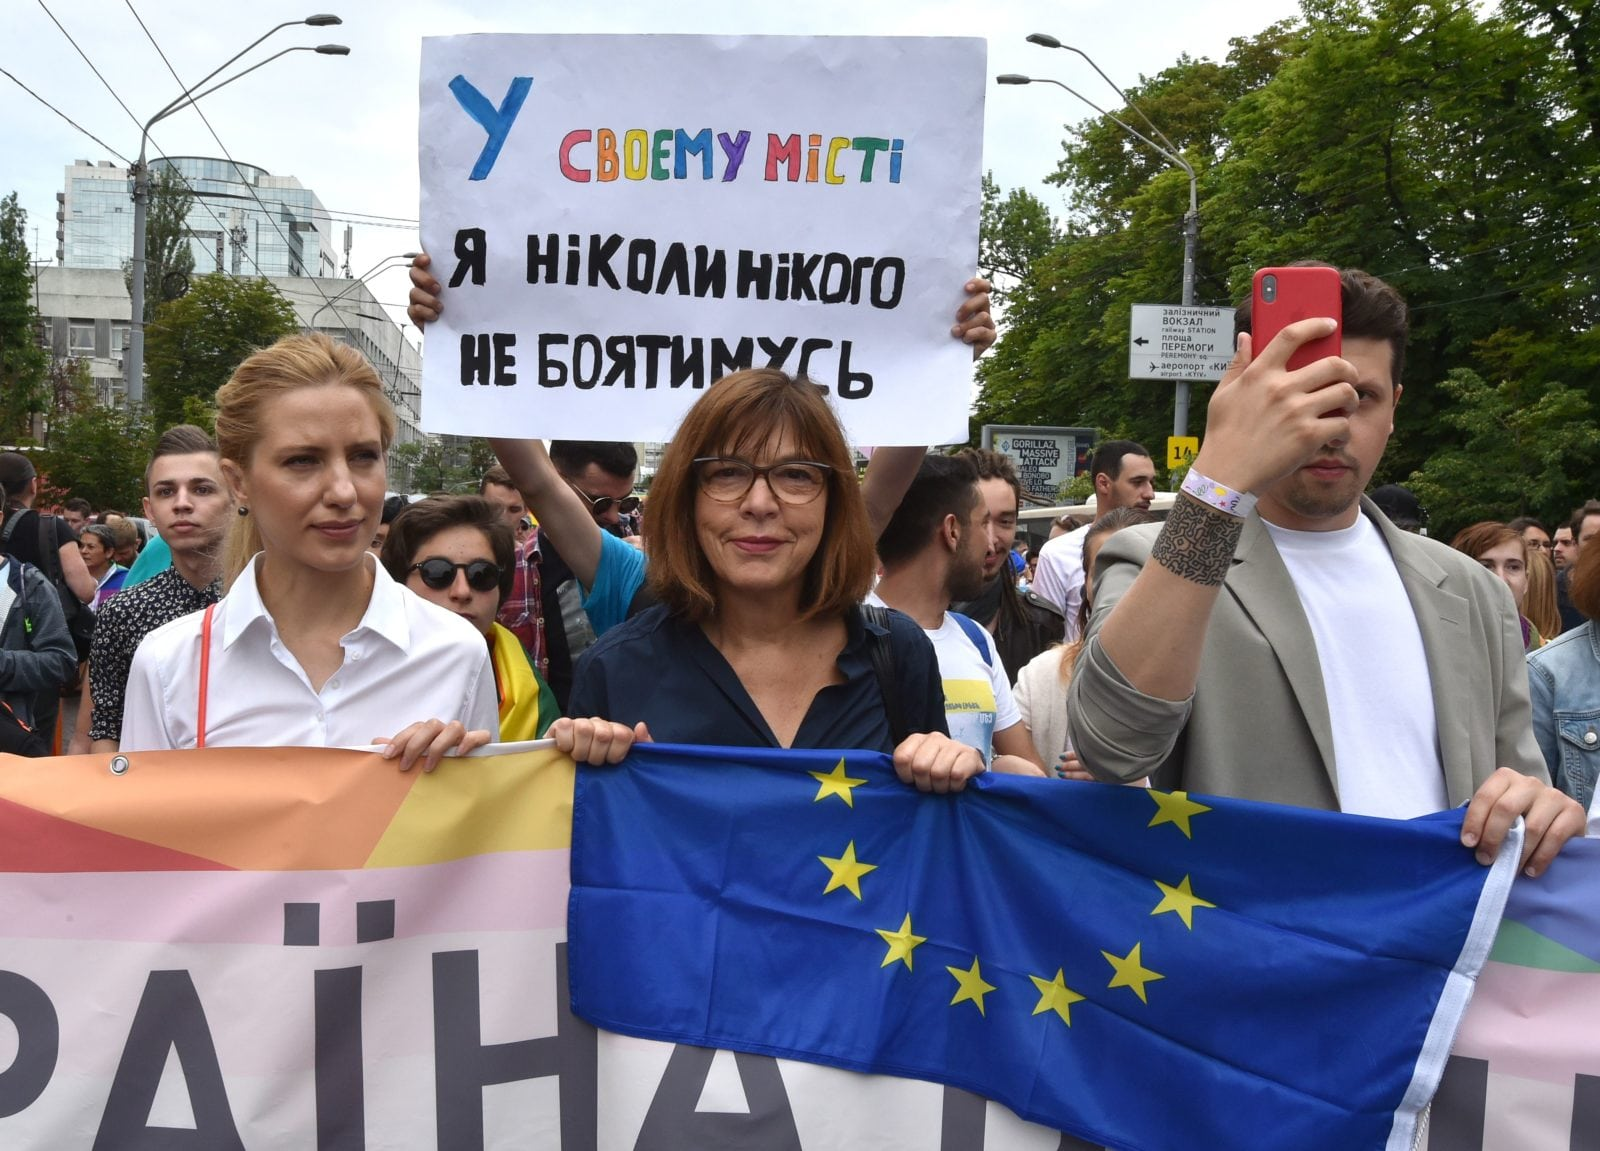 Member of the European Parliament Rebecca Harms takes part in the Pride march in central Kyiv last month (GENYA SAVILOV/AFP/Getty)